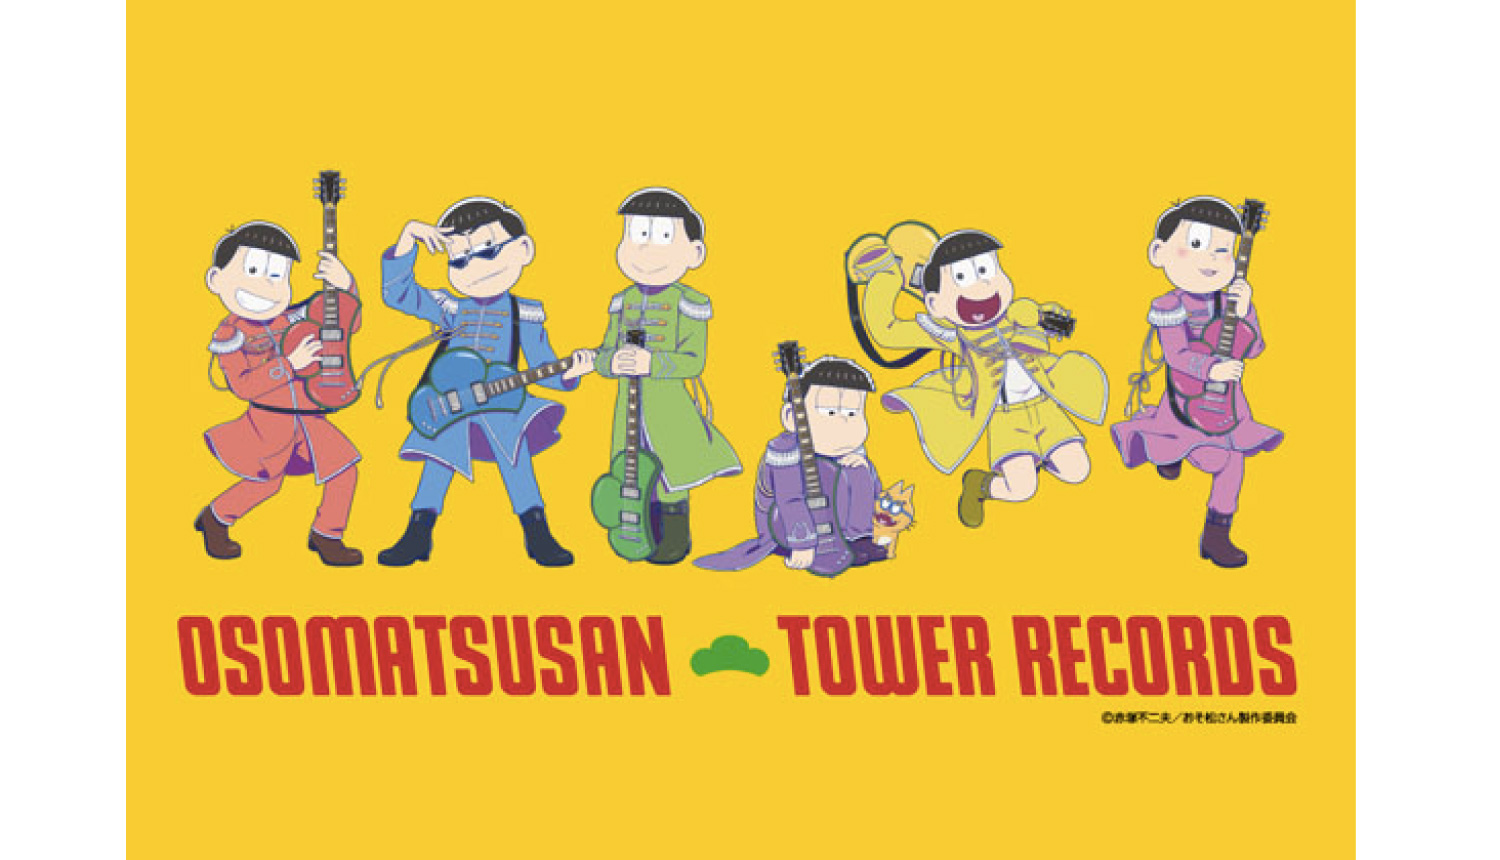 「おそ松さん-×-TOWER-RECORDS」Osomatsusan-Tower-Records-小松先生